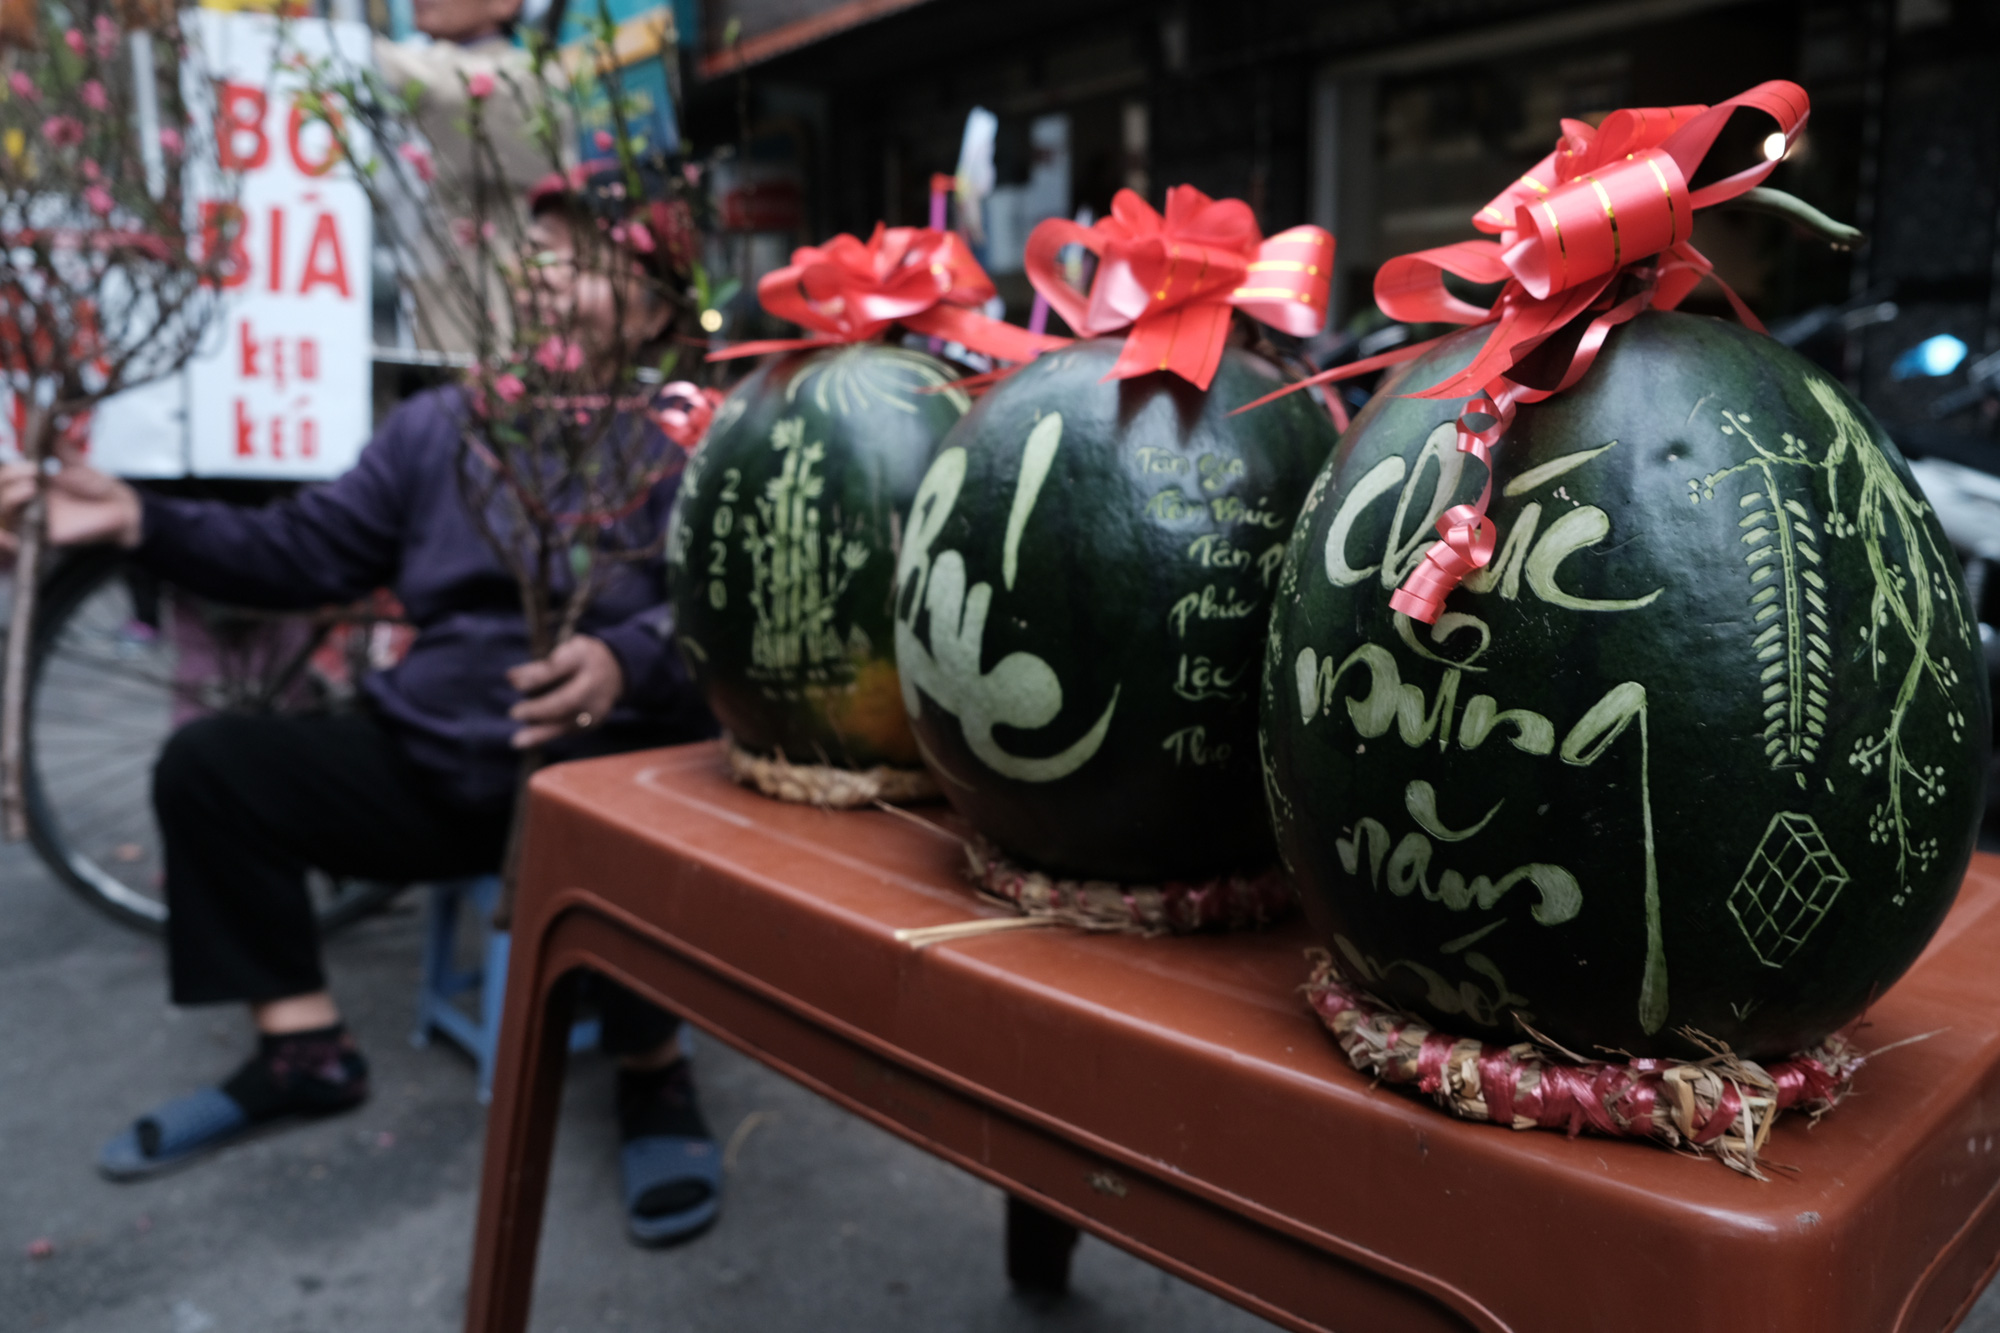 Calligraphic watermelons a prized Tet offering in Hanoi